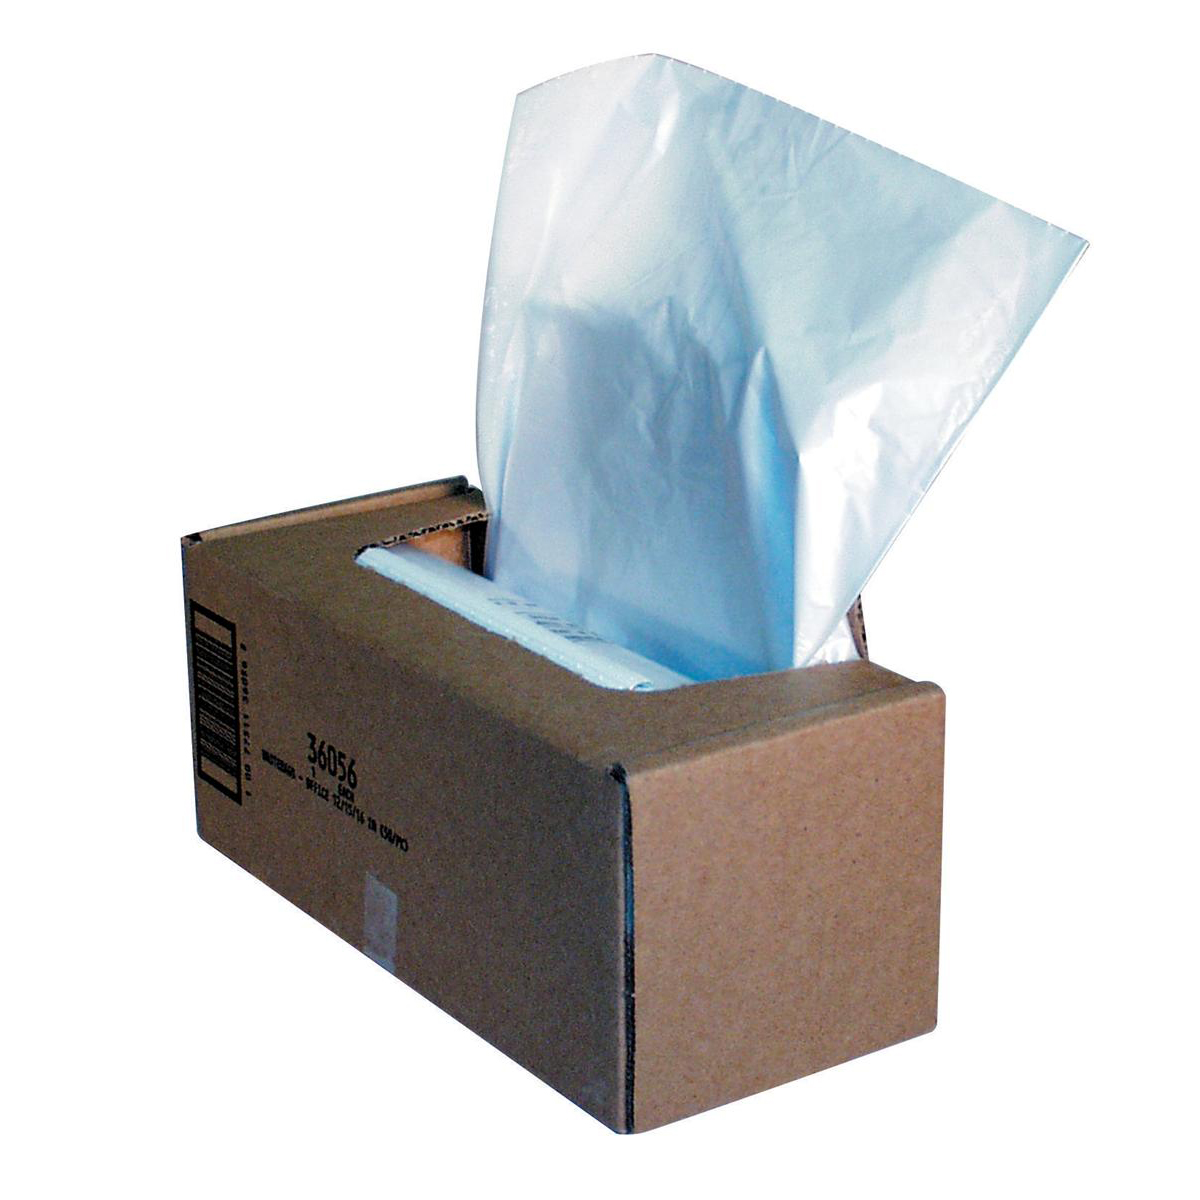 Image for Fellowes Shredder Bags Capacity 94 Litre [for C-320 C-420 Series] Ref 36056 [Pack 50]